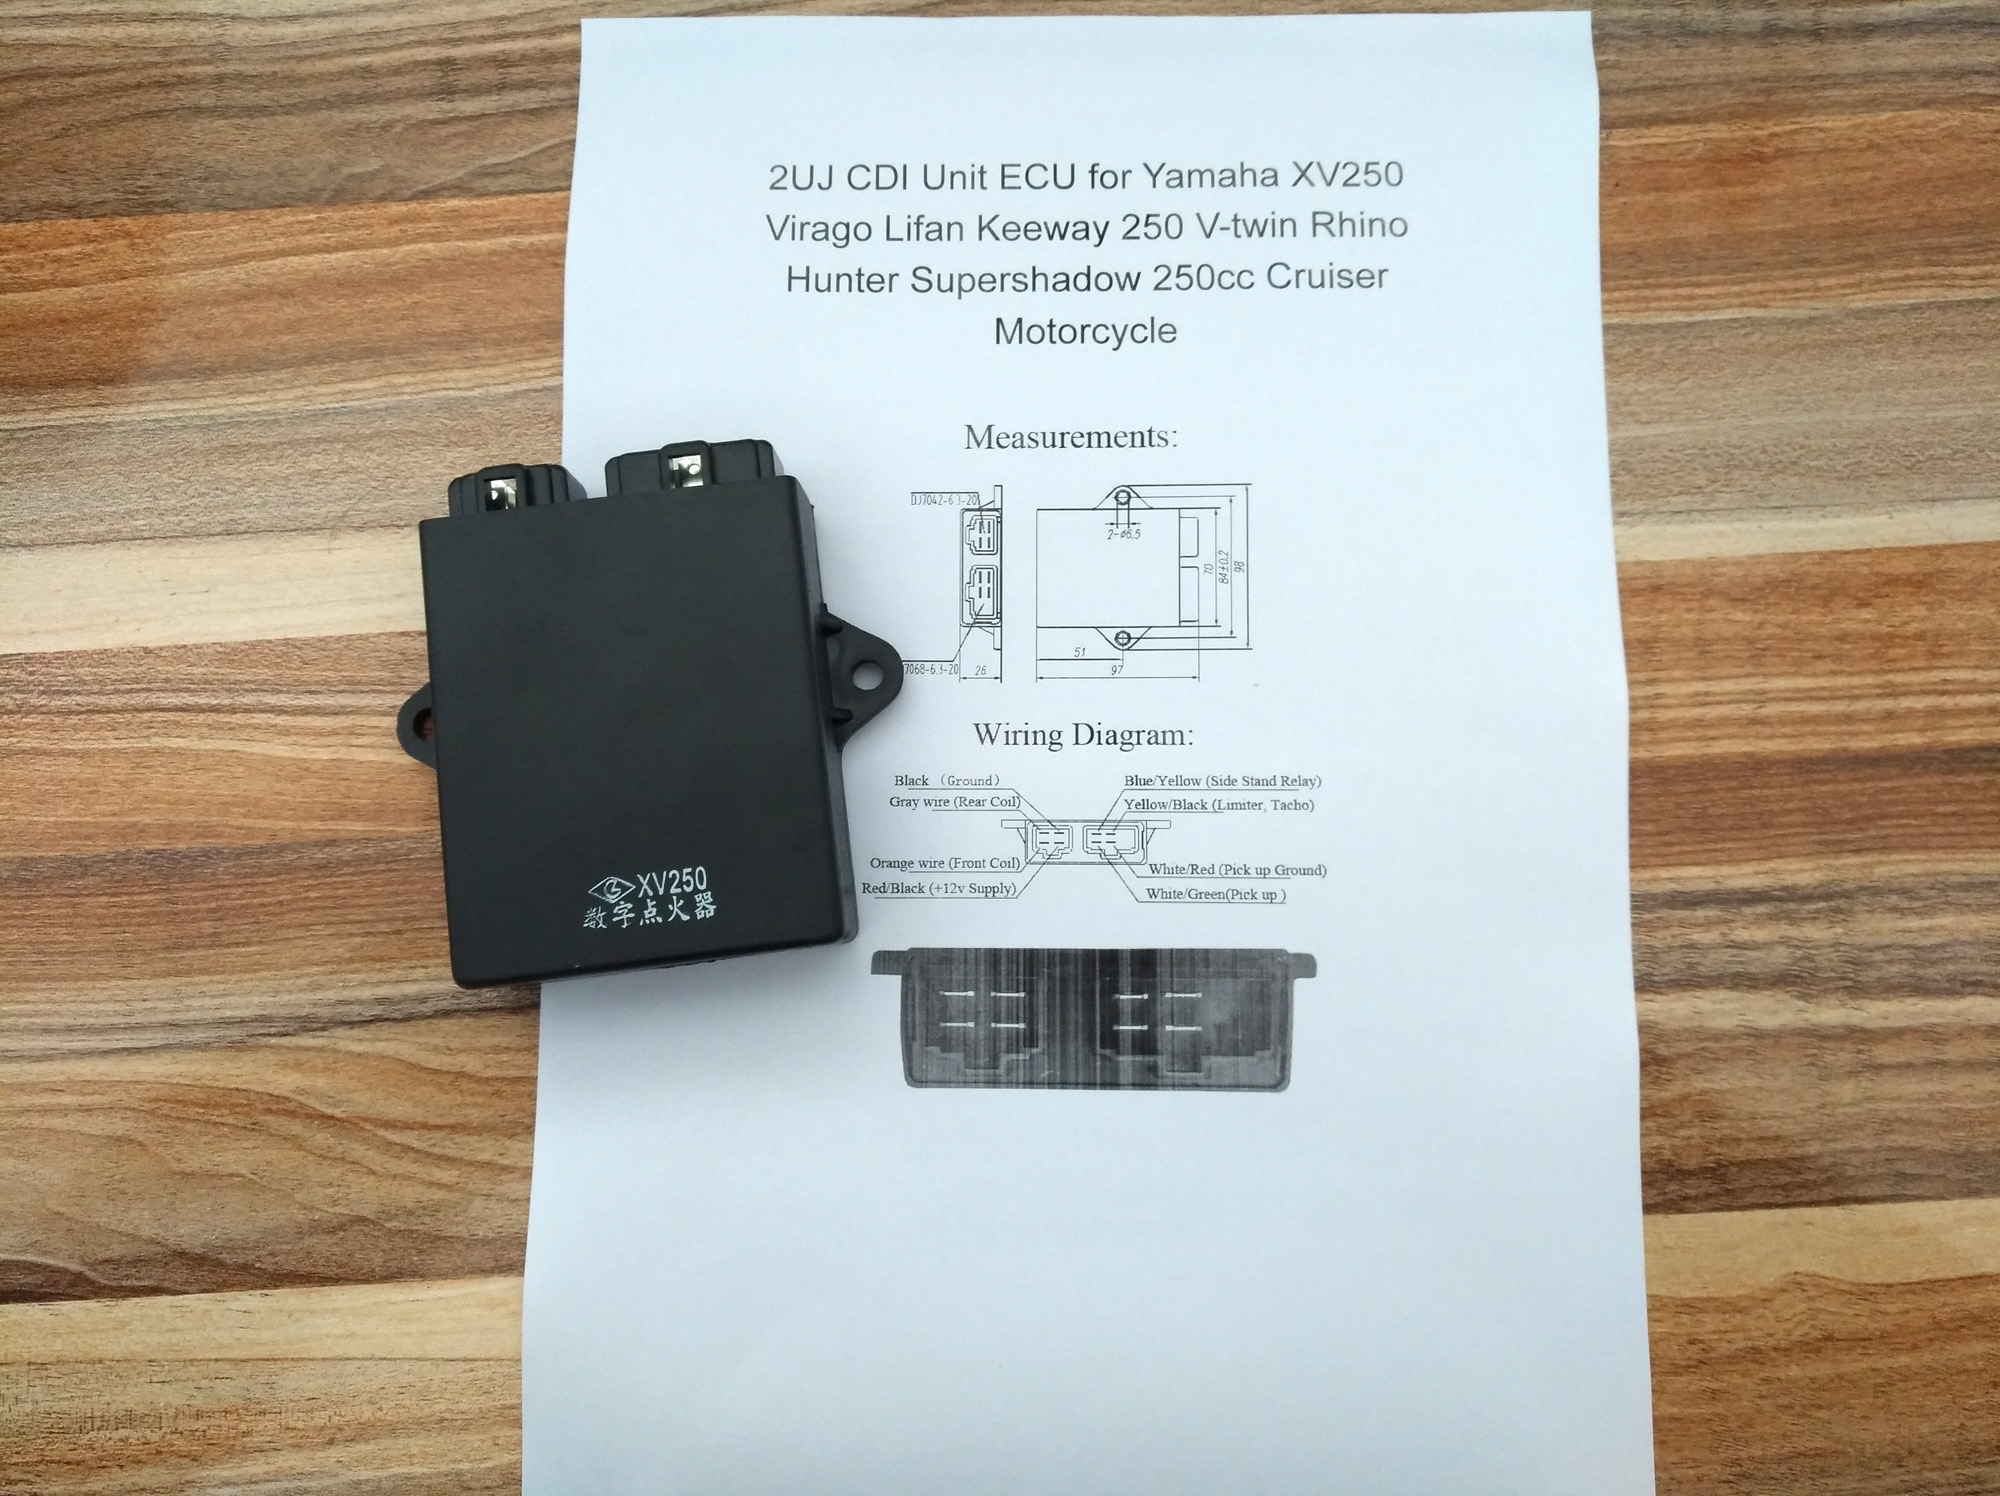 d59585c1 0ff0 485f ad4d 9d7dc6683772 2uj ecu cdi for yamaha xv250 virago lifan keeway 250 v twin rhino  at gsmportal.co